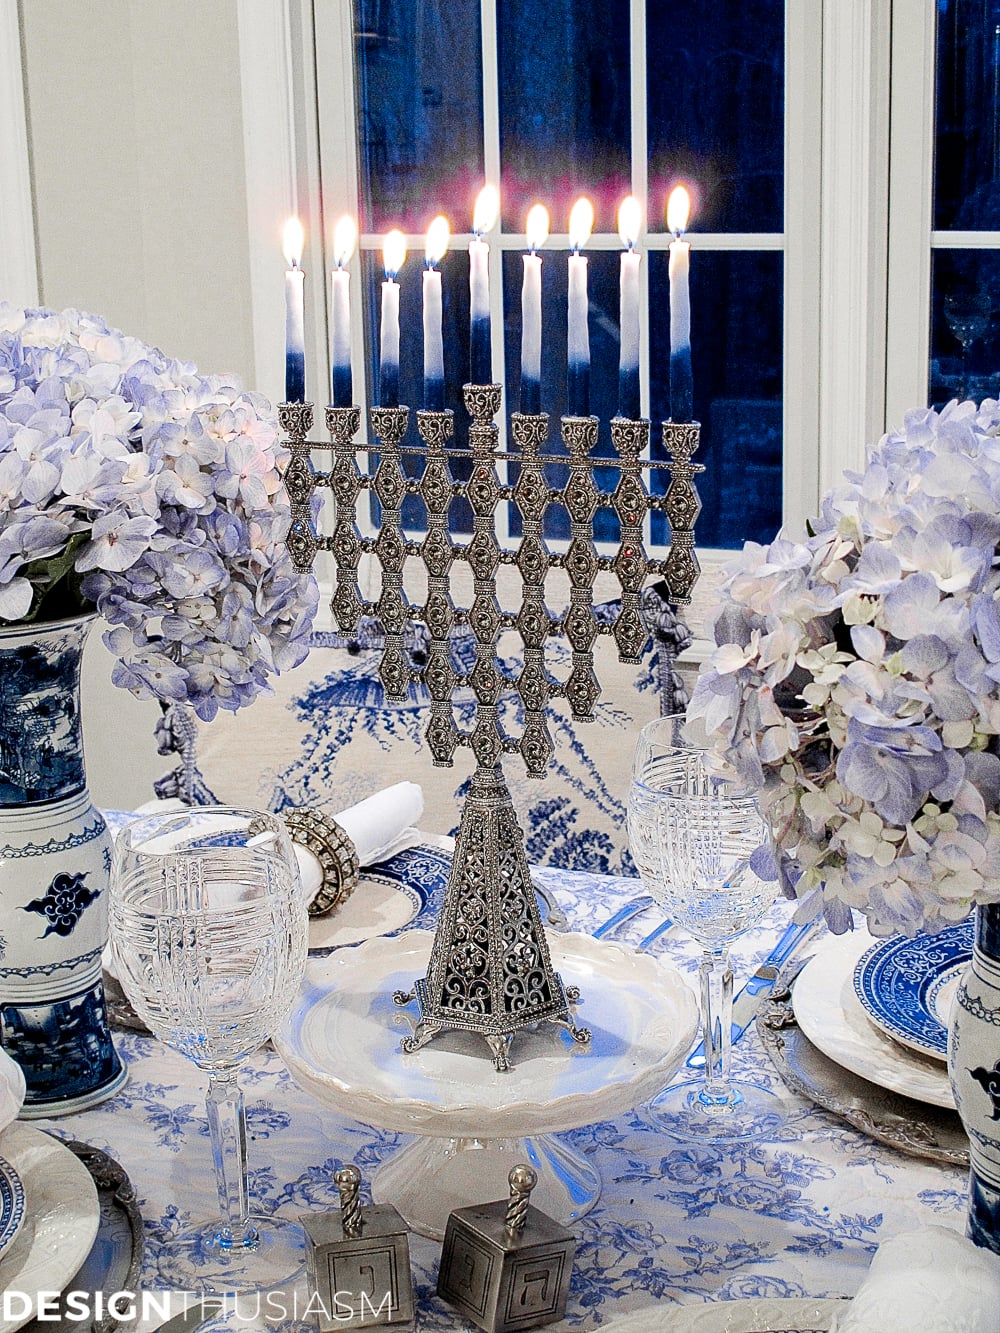 French Toile in a Blue and White Holiday Table Setting - Designthusiasm.com